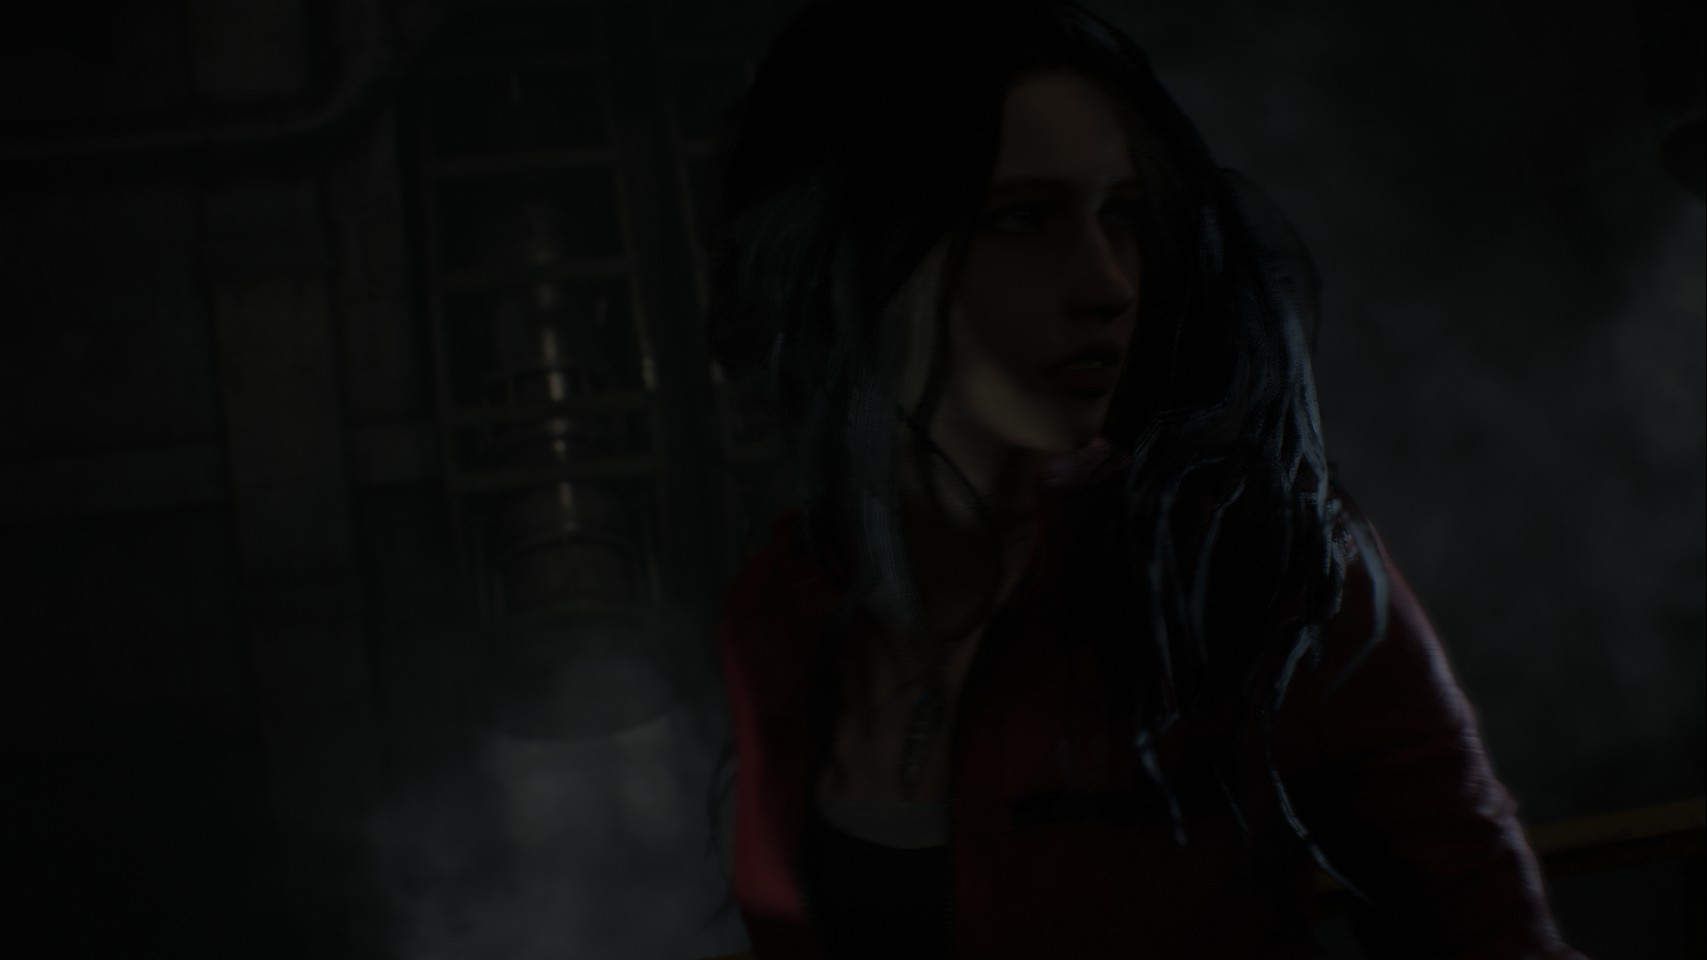 Well Hello There at Resident Evil 2 (2019) Nexus - Mods and community